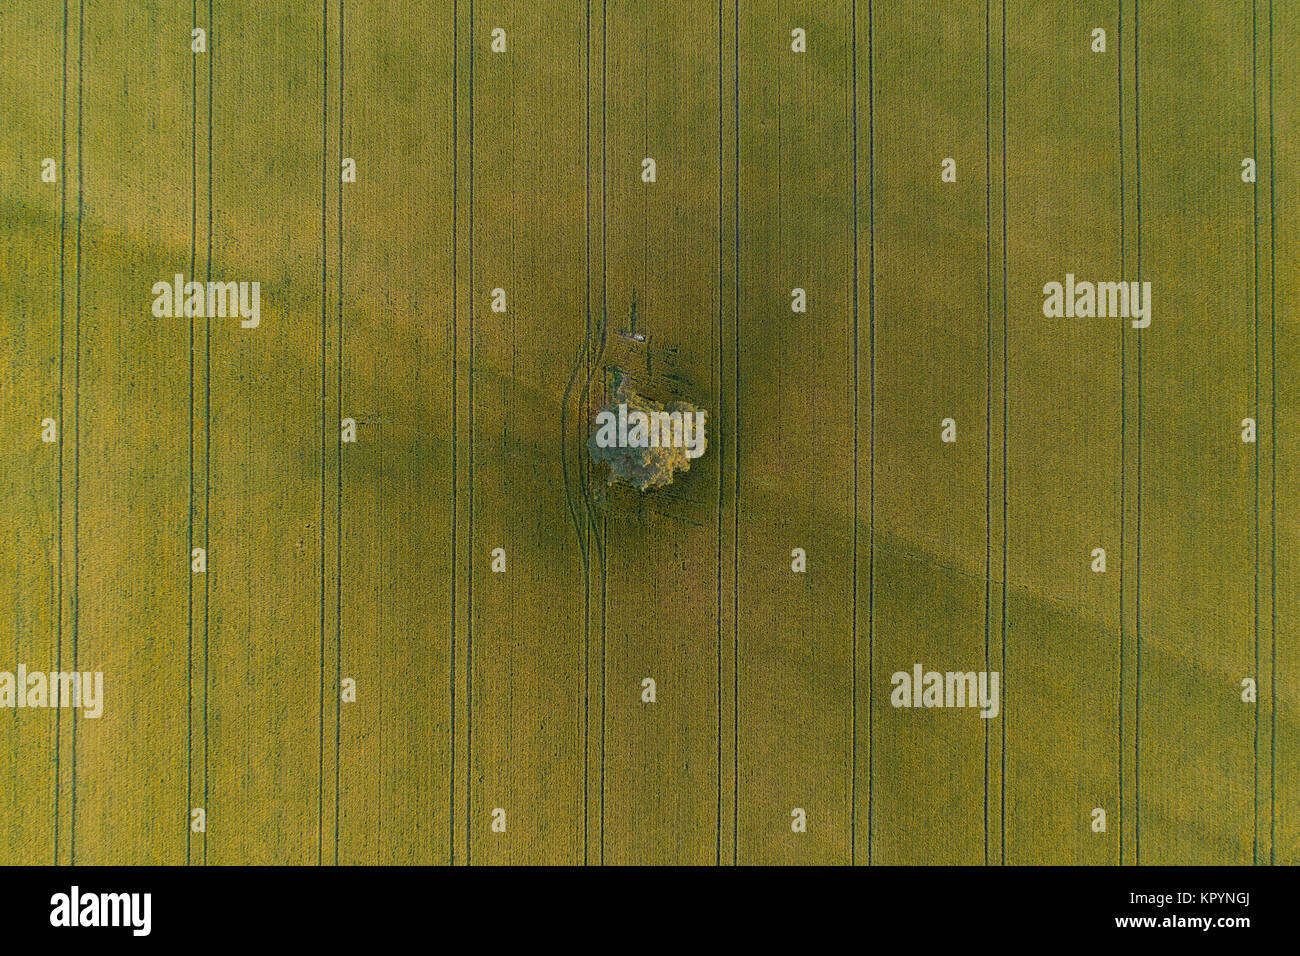 Aerial view of lonely tree in the middle of green wheat field with tractor tracks crossing the field - Stock Image